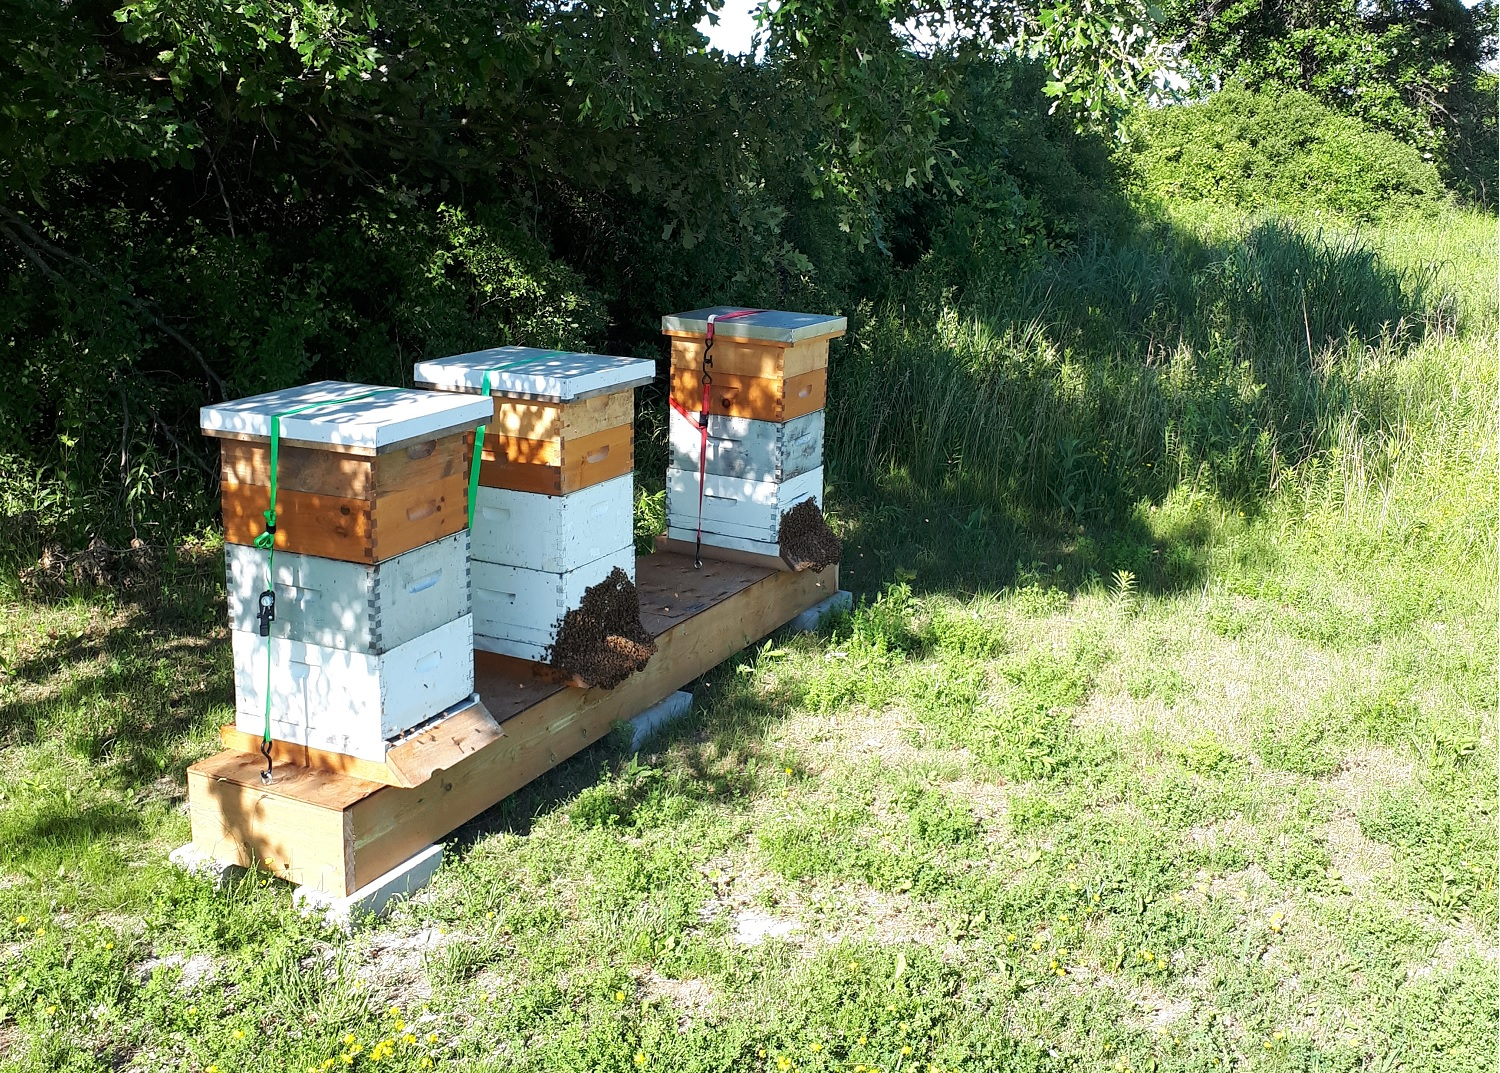 beehives in the shade of a tree